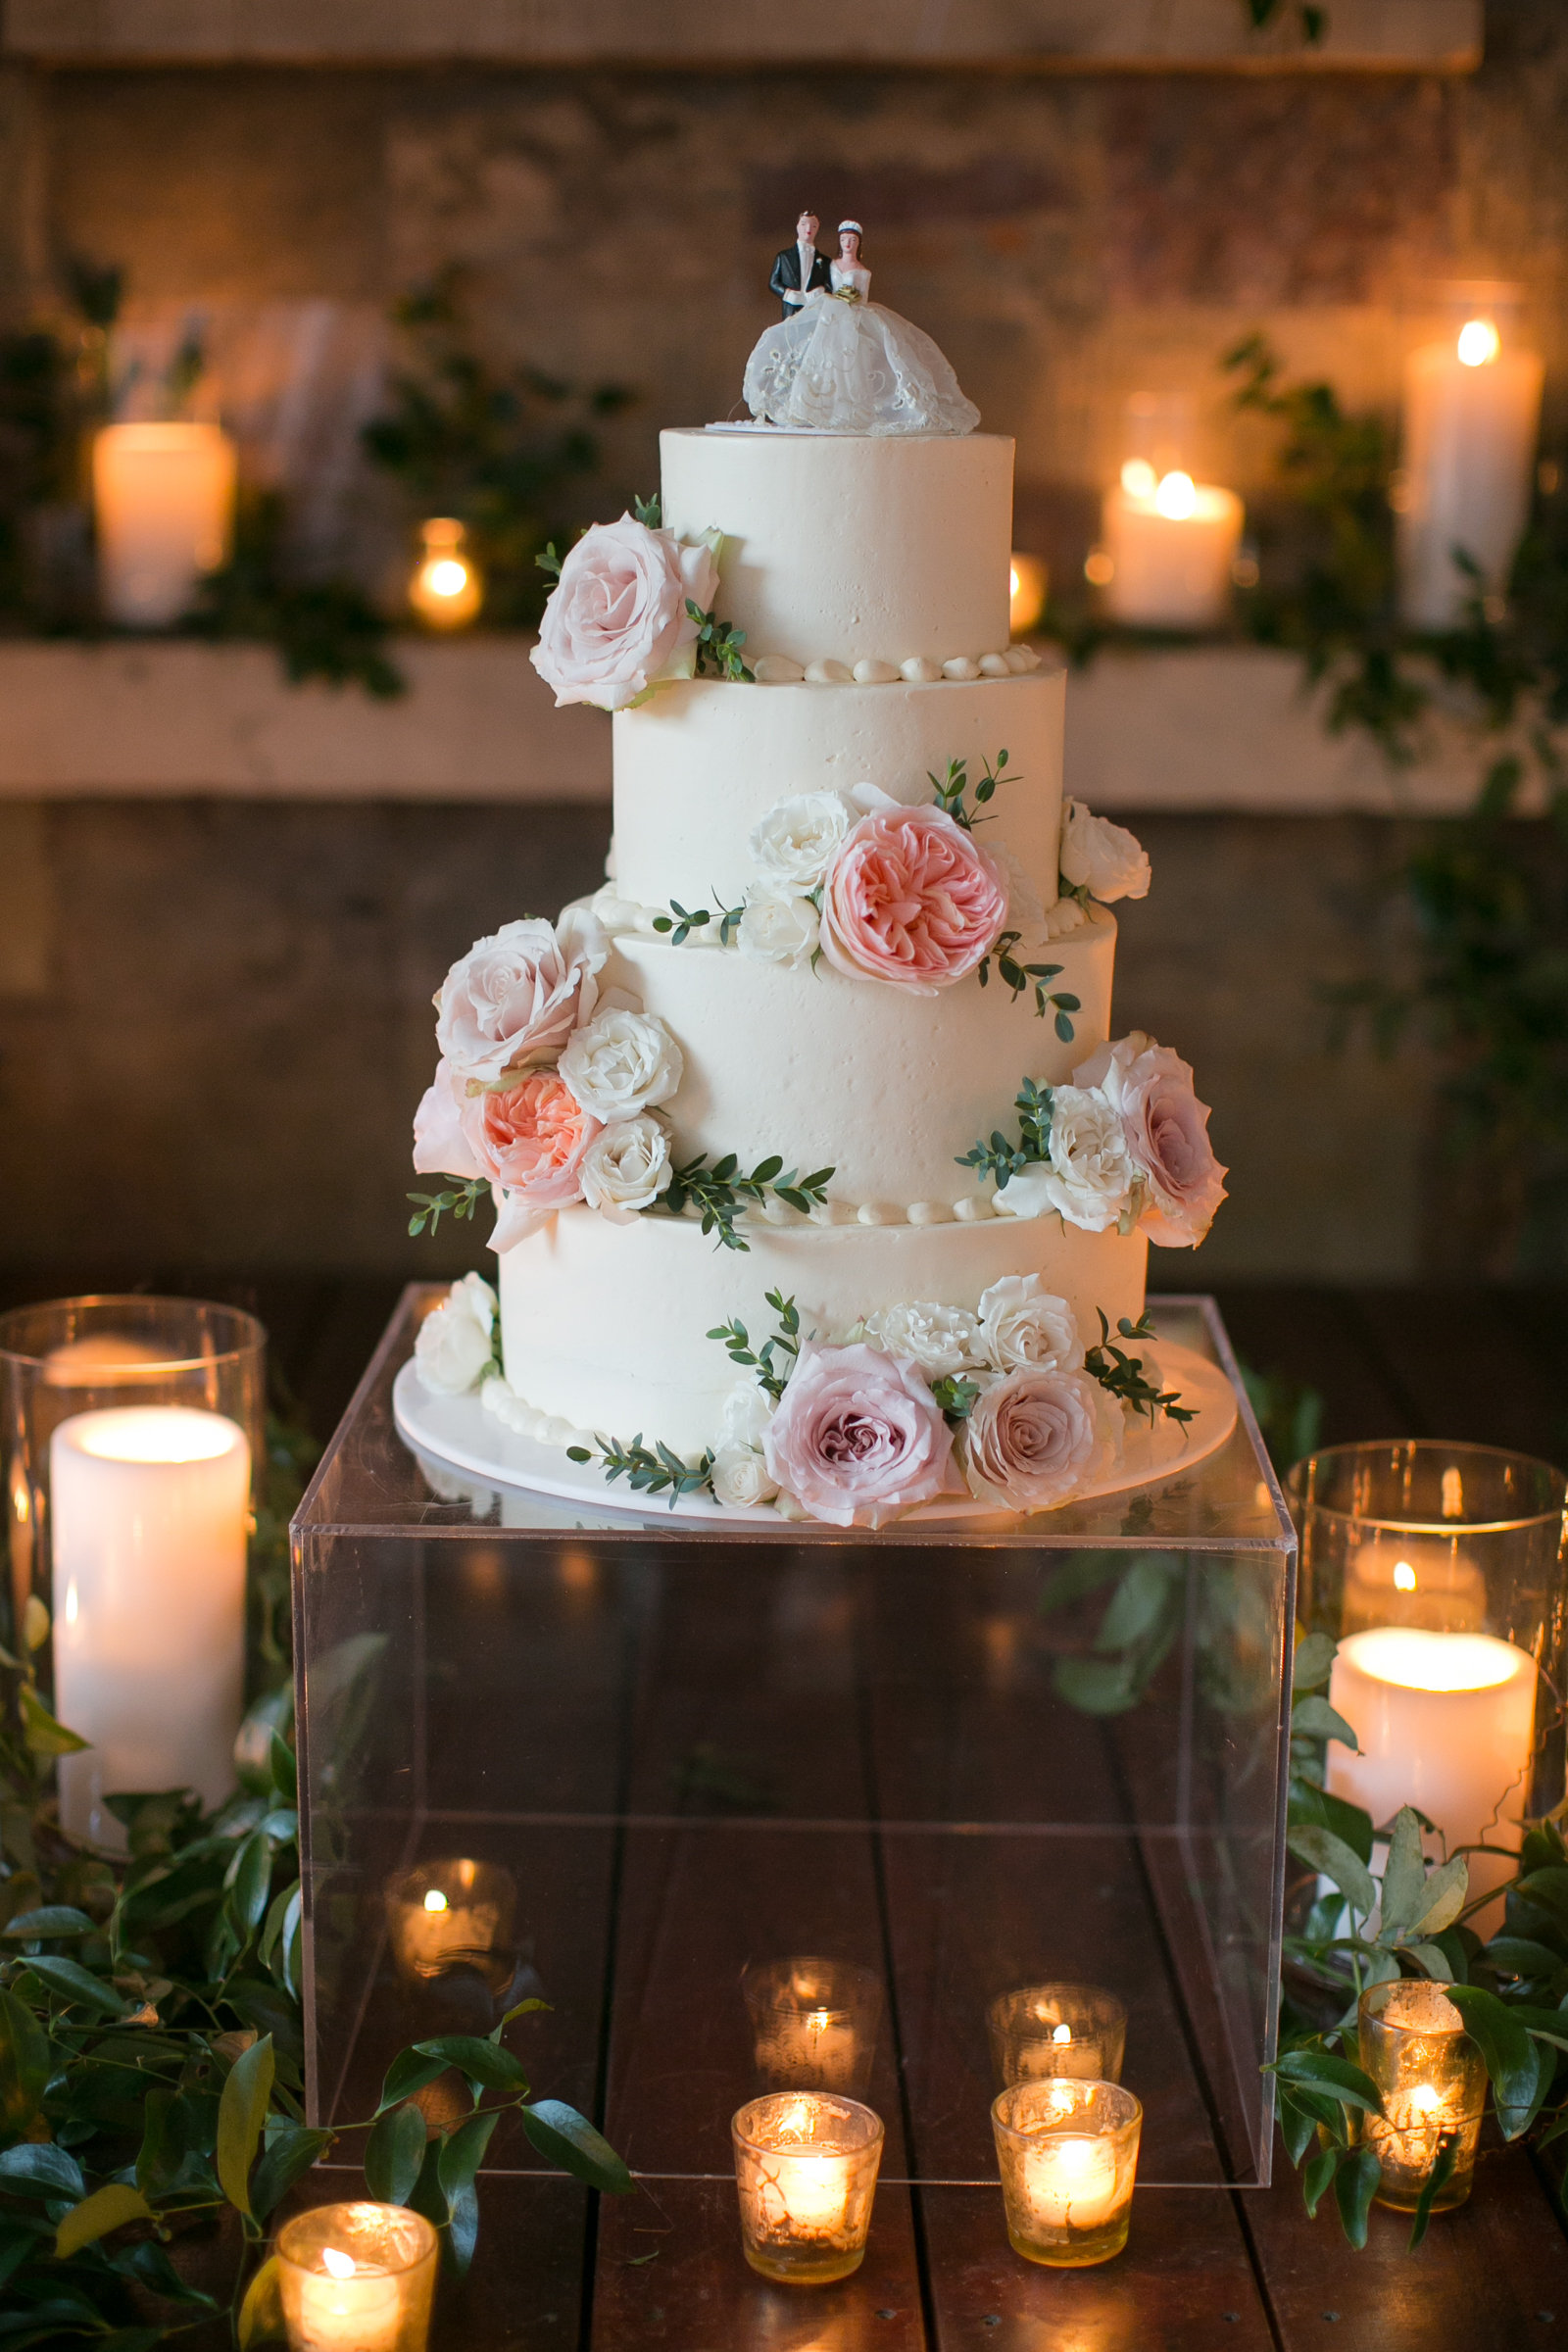 Photo: Janeane Marie Photography // Cake: Barr Mansion // Decor: STEMS Floral & Design